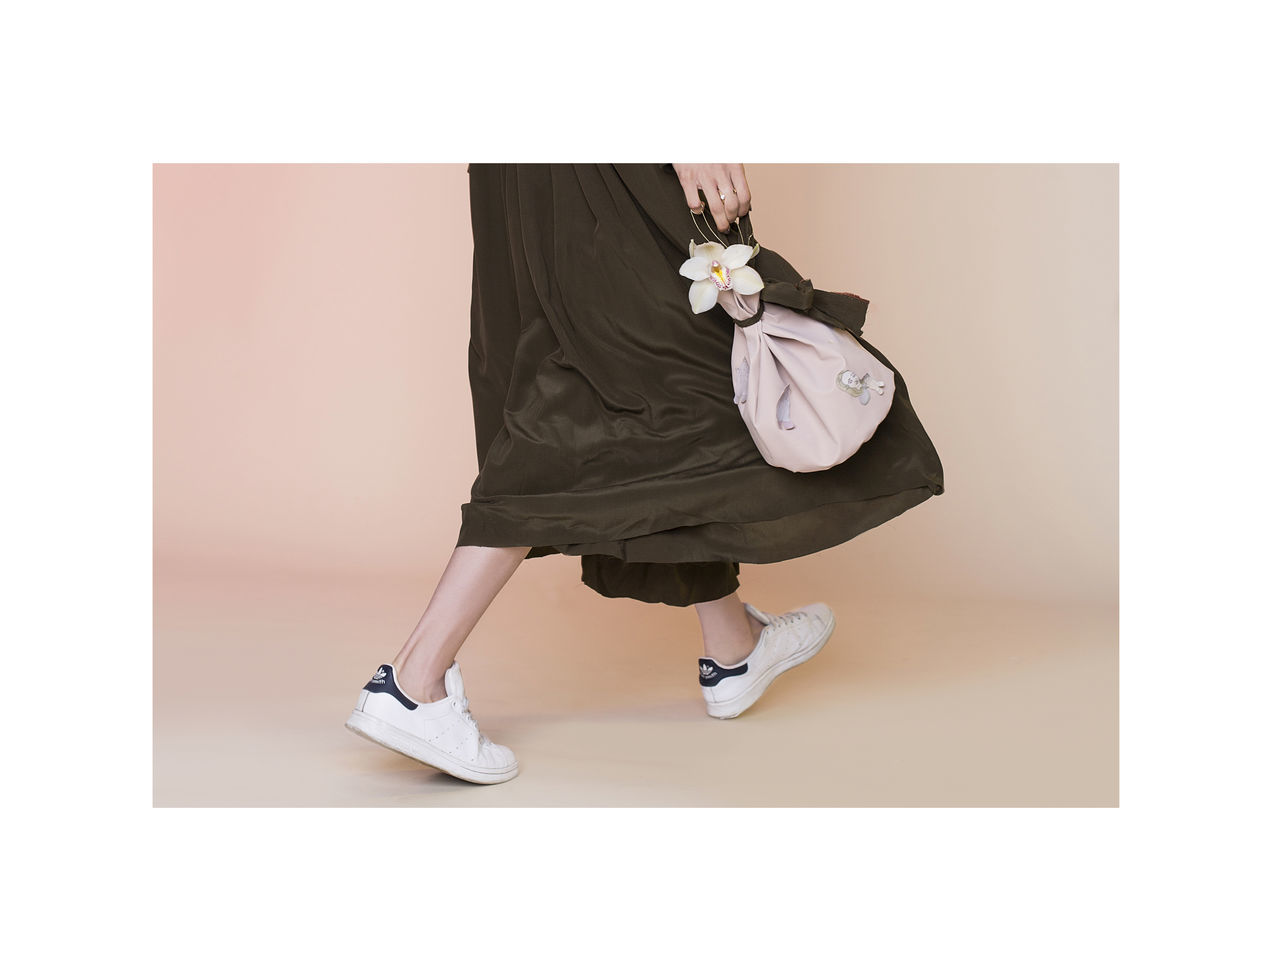 Accessories Action Adidas Adidasoriginals Amazing Bag Dress Fashion Fashion&love&beauty Full Length Girl Human Body Part Indoors  One Person People Photoshoot Picoftheday Pink Studio Walk White Background Wind